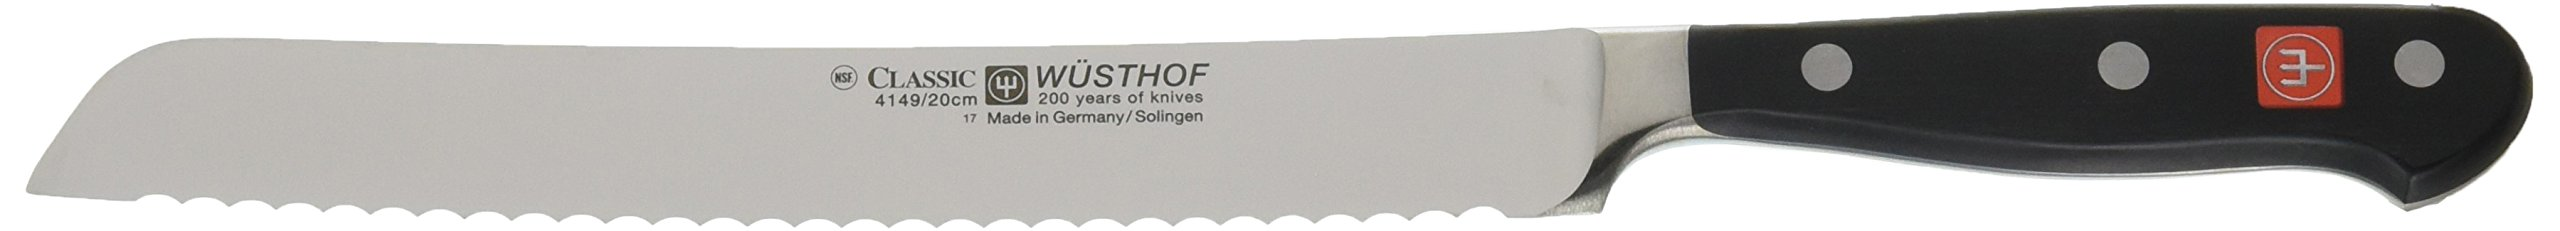 Wusthof Classic High Carbon Stainless Steel Bread Knife, 8 Inch